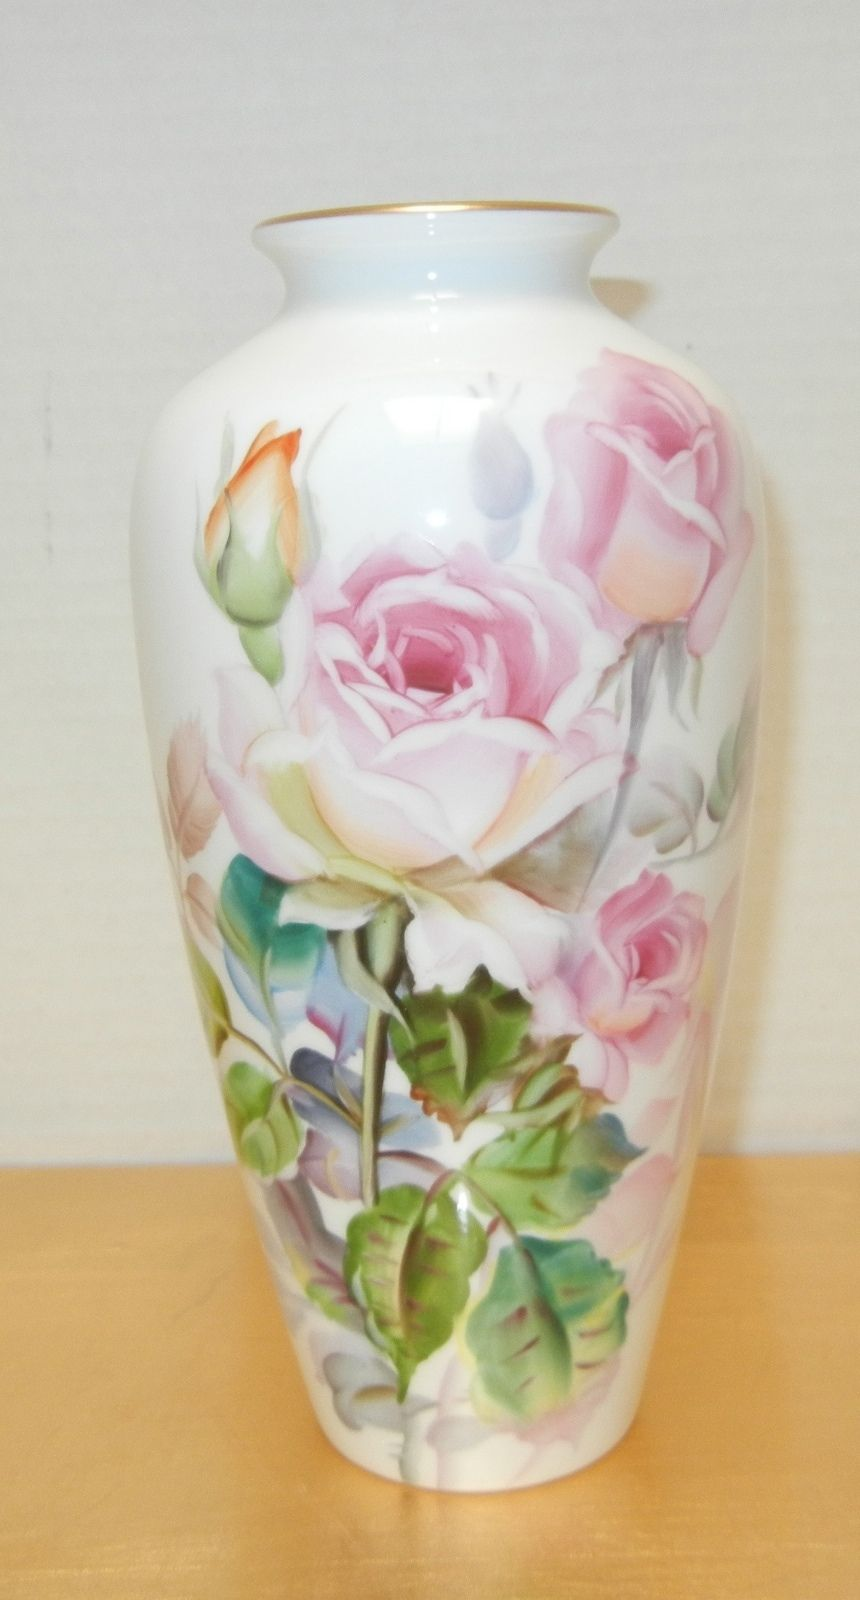 Noritake bone china nippon toki kaisha japan floral vase my noritake bone china nippon toki kaisha japan floral vase porcelain vasepainted porcelainhand reviewsmspy